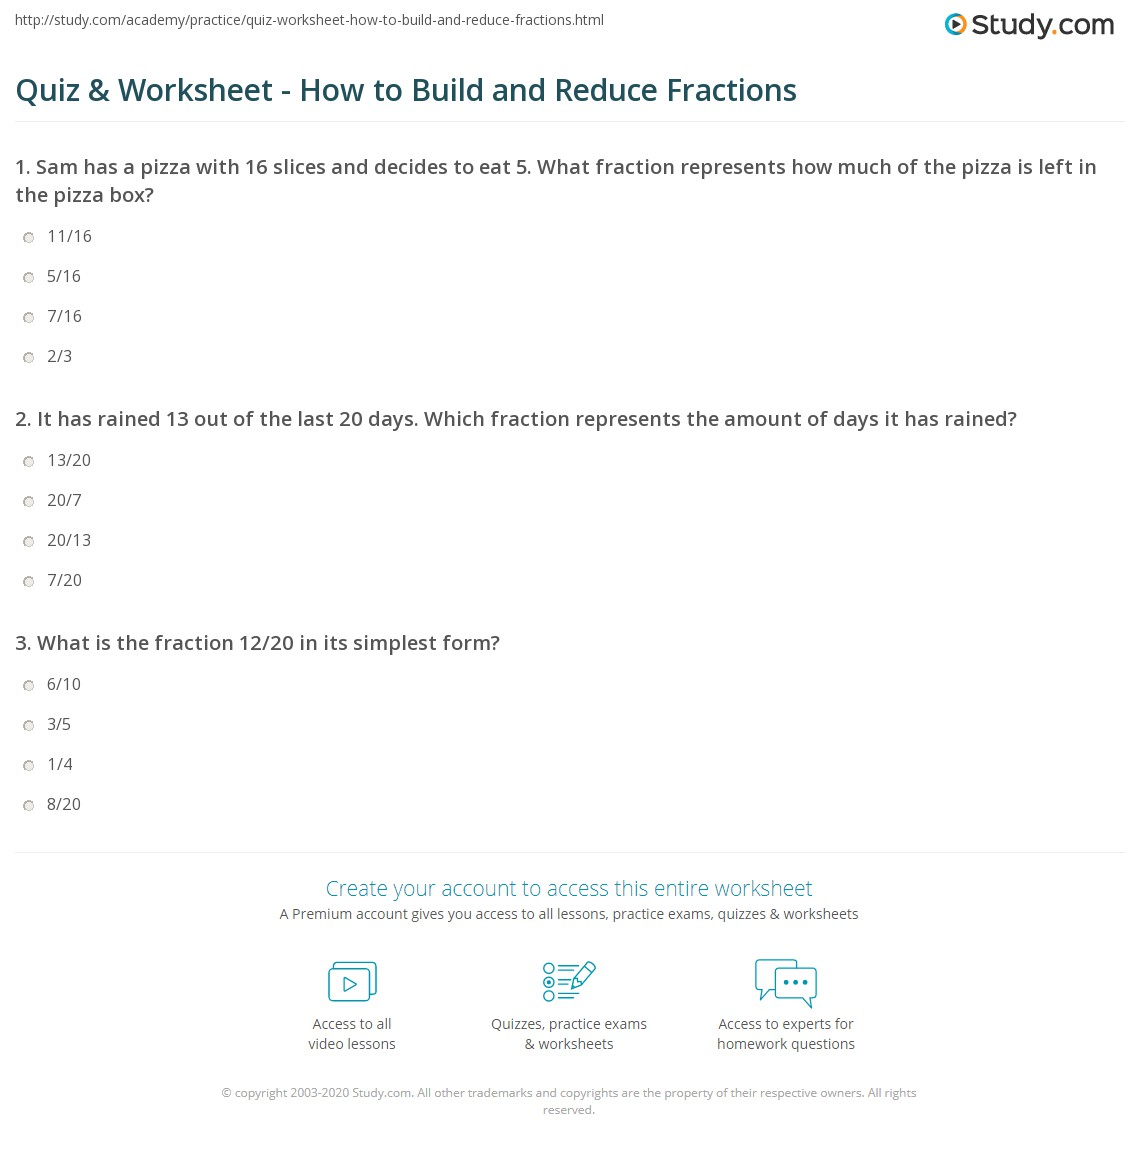 How To Reduce Fractions Worksheet Simplifying Fractions – Reducing Fractions Worksheet 6th Grade